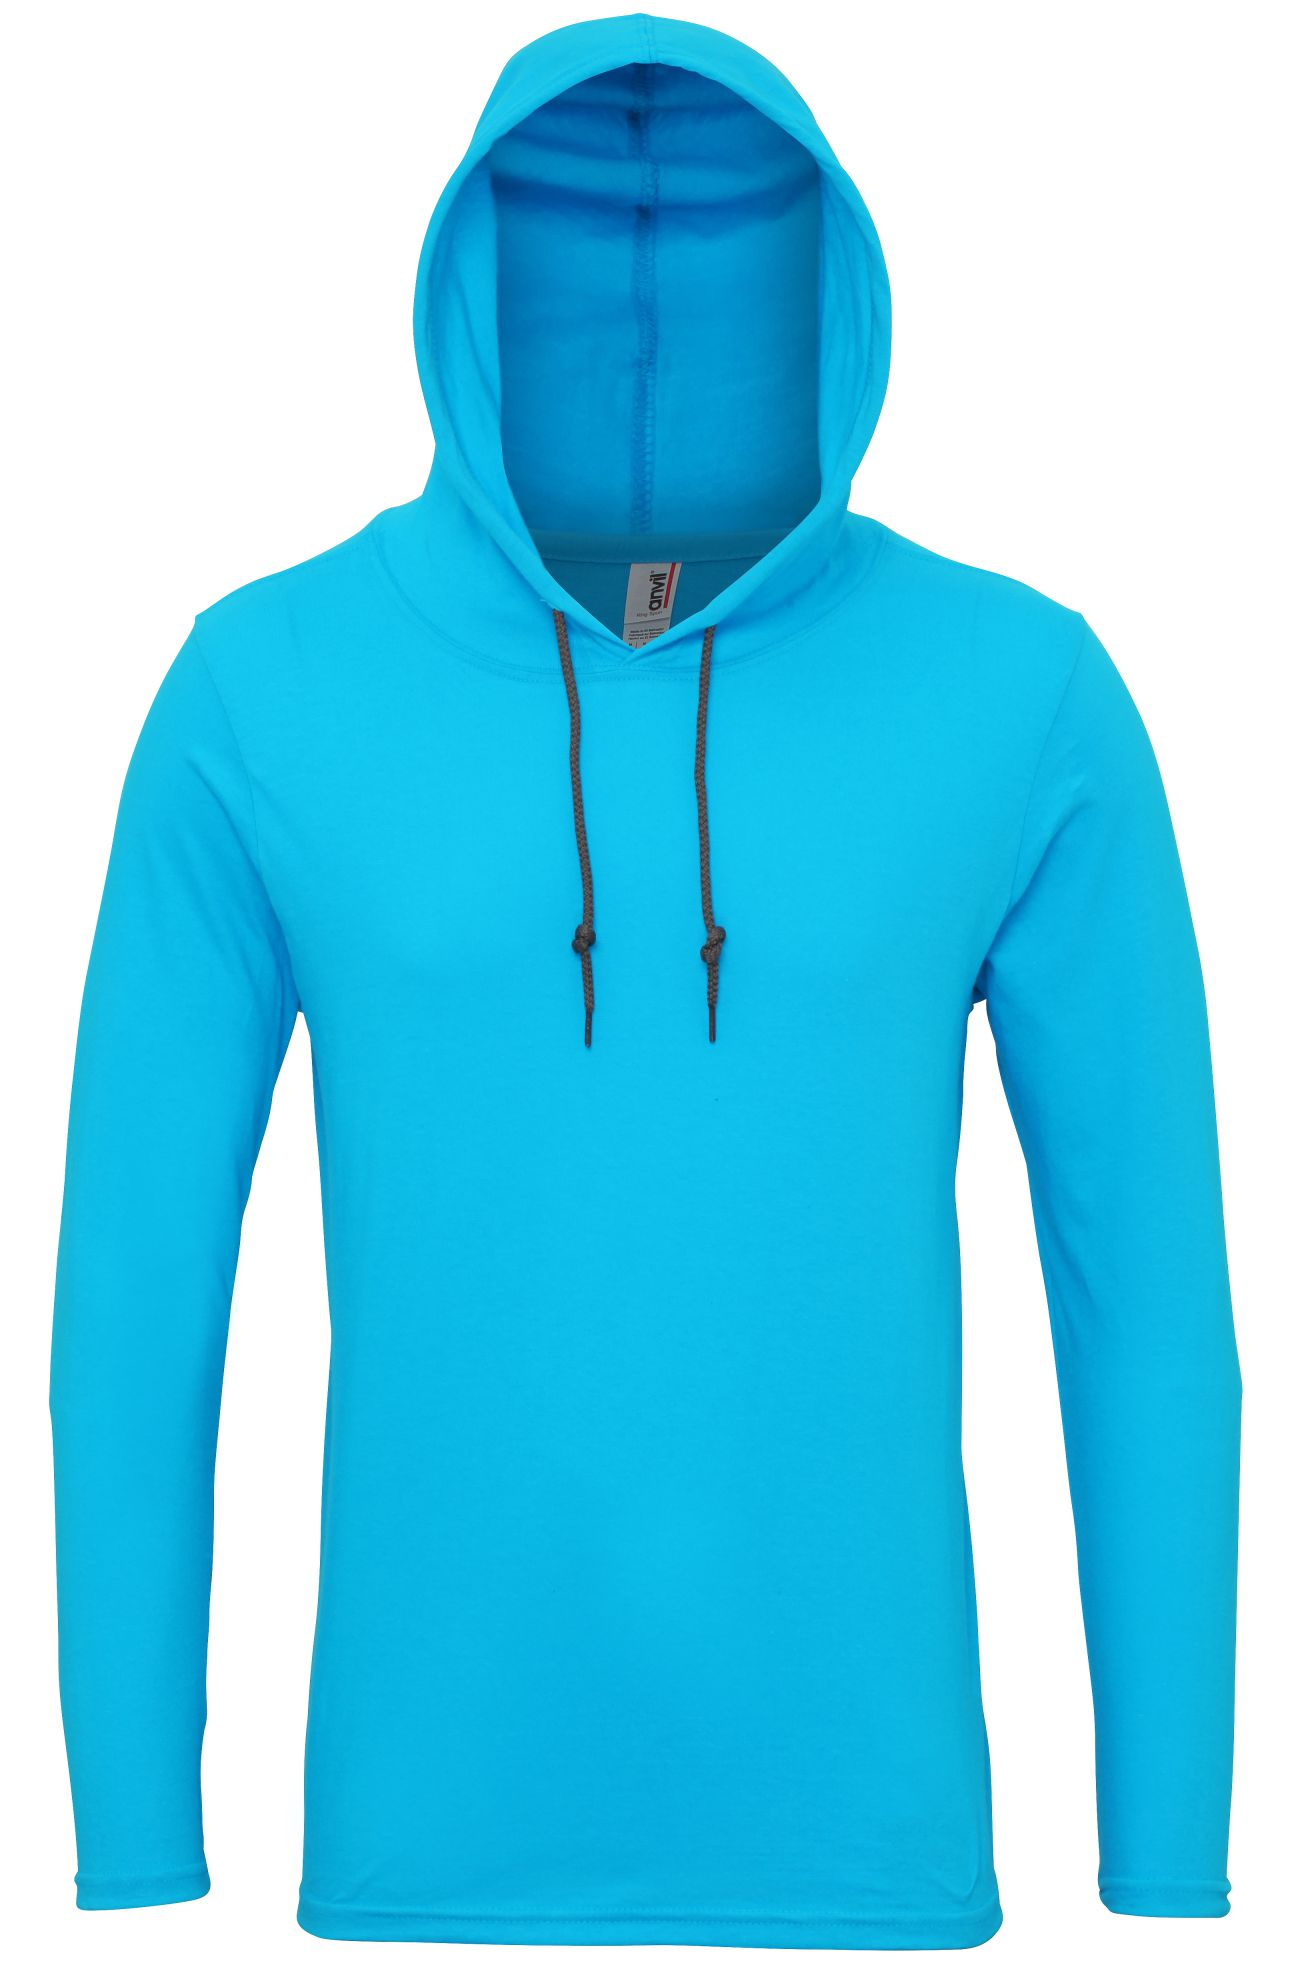 Mens-Adult-Fashion-Basic-Long-Sleeve-Hooded-T-Shirt-Hoodie-Tee-Top-Casual-Plain thumbnail 5